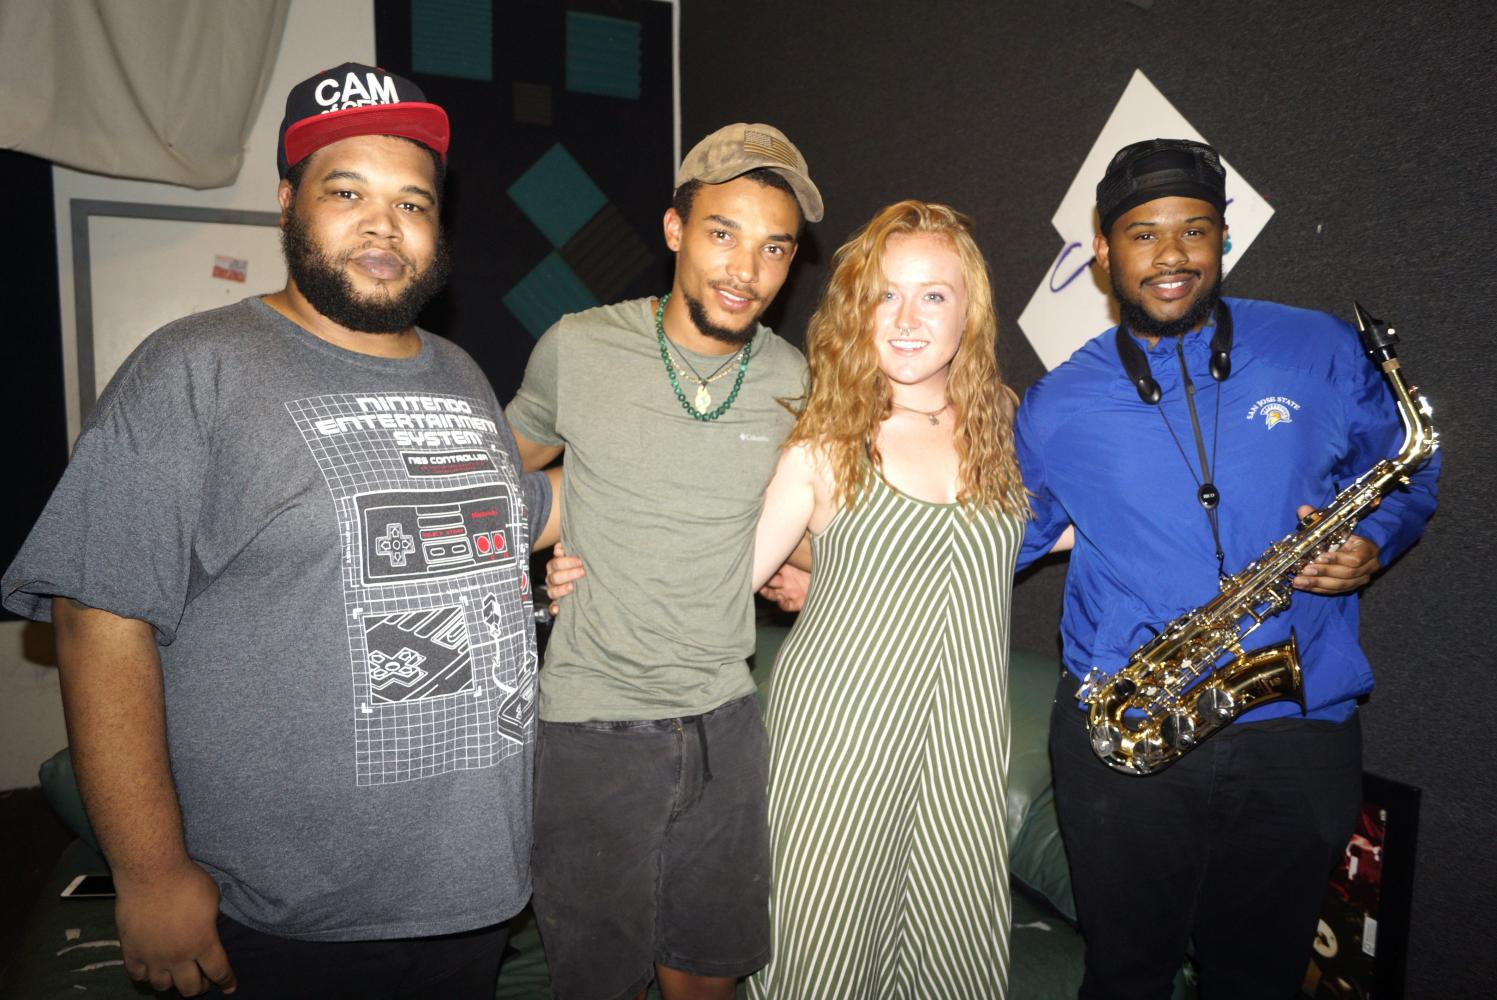 Left to right, Cameron McCord, Theo Scott-Femenella, Madison Rane Montgomery and Myles Taylor meet for practice at Collective Record Studios on Sept. 13. McCord and Myles are members of Freequensee and will perform alongside Scott-Femenella on Sept. 22 at The Boardwalk.